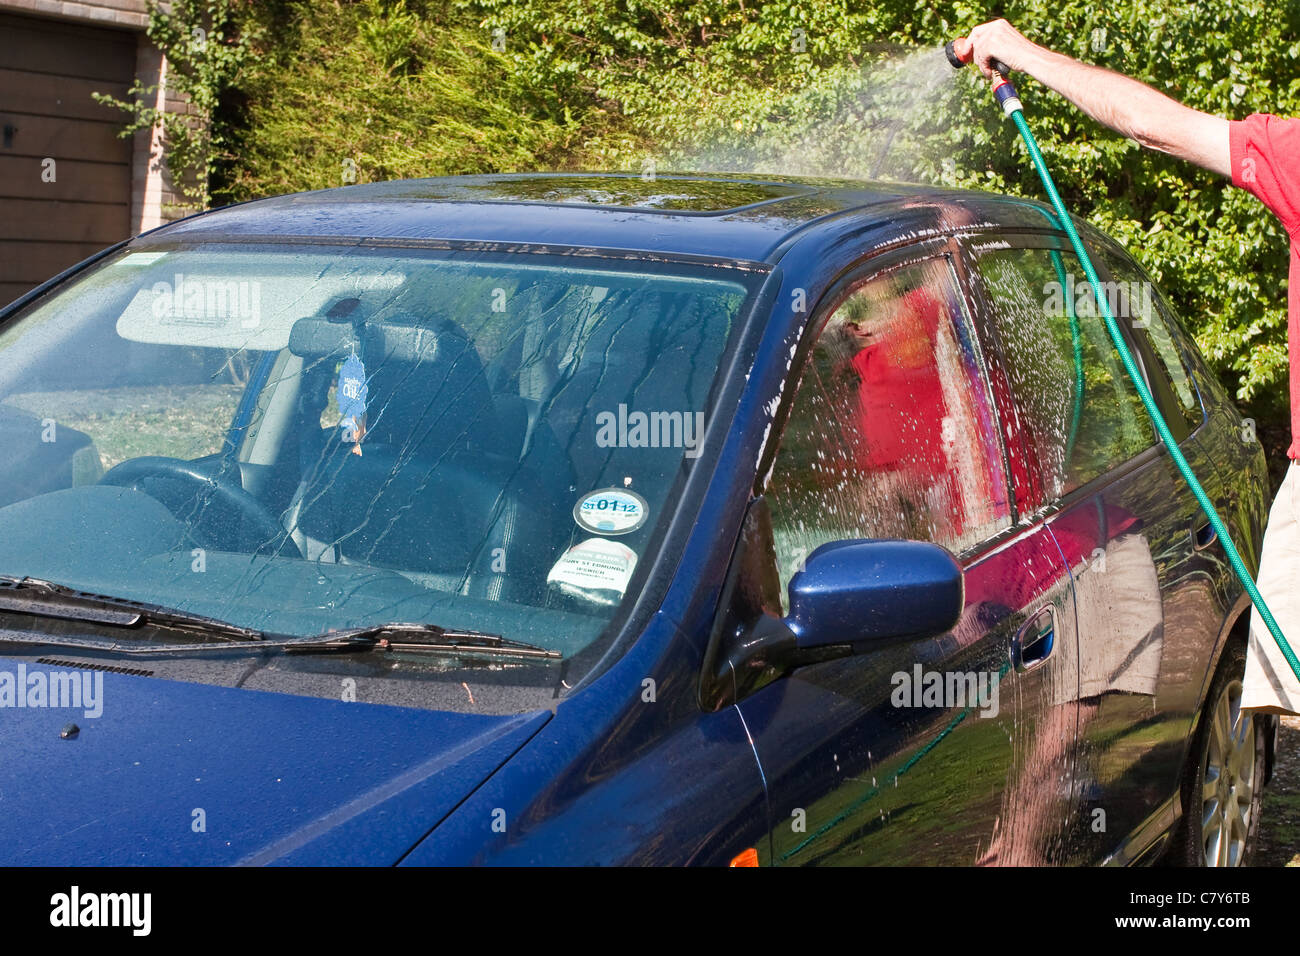 A man washing a car  during the October heat wave in the UK, 2011 - Stock Image